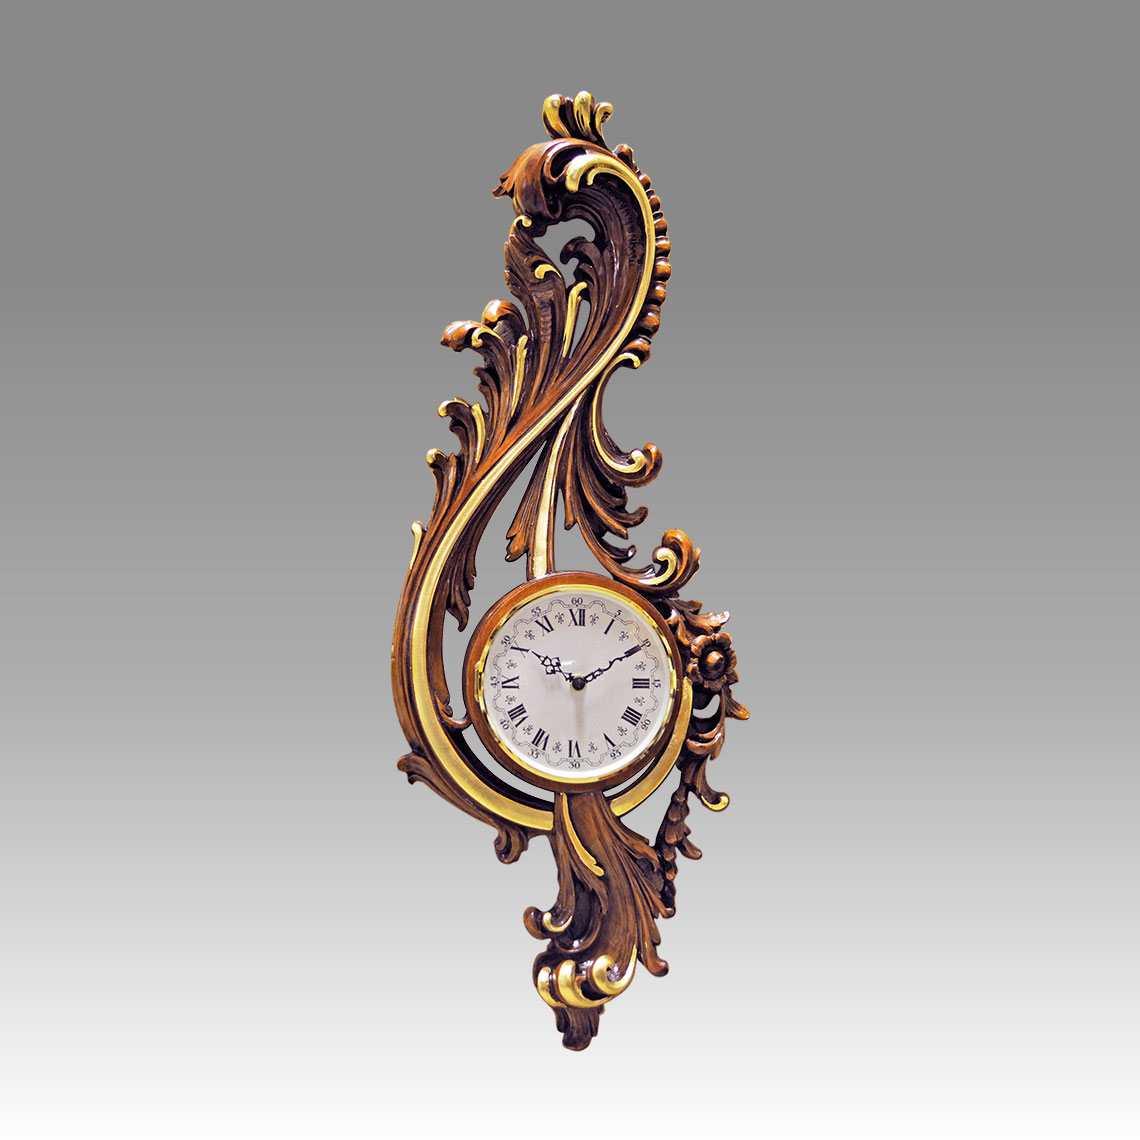 Wall Clock-Vienna Clock 208_1G walnut with gold leaf handcurved wood, quartz battery movement